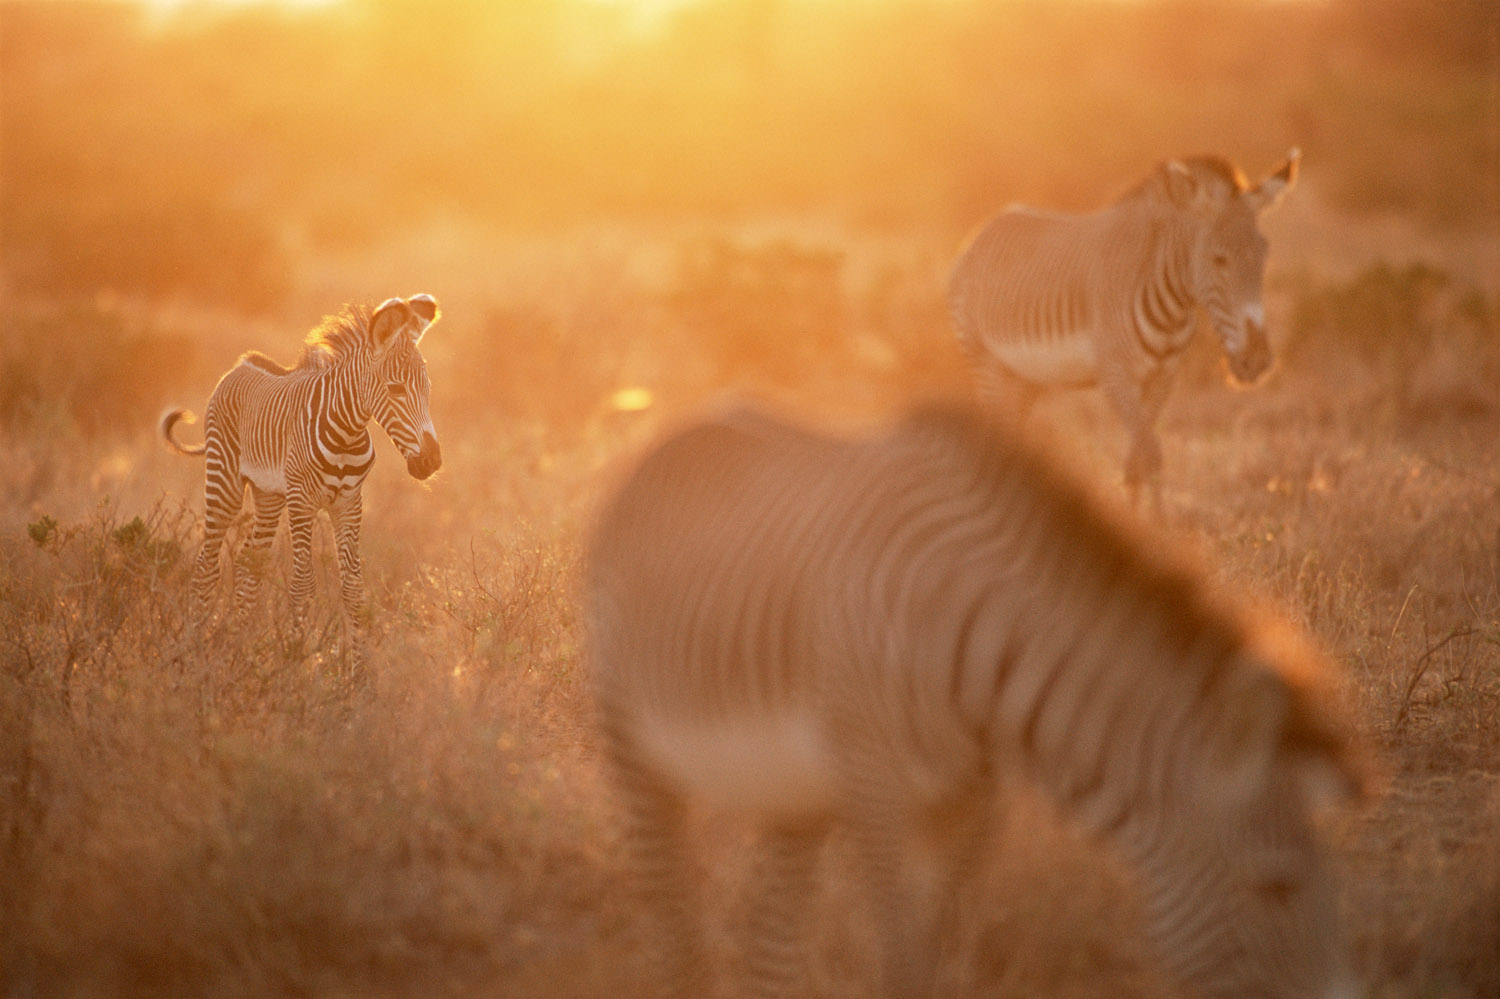 Grevy's zebra foal at sunset, Samburu National Reserve, Kenya